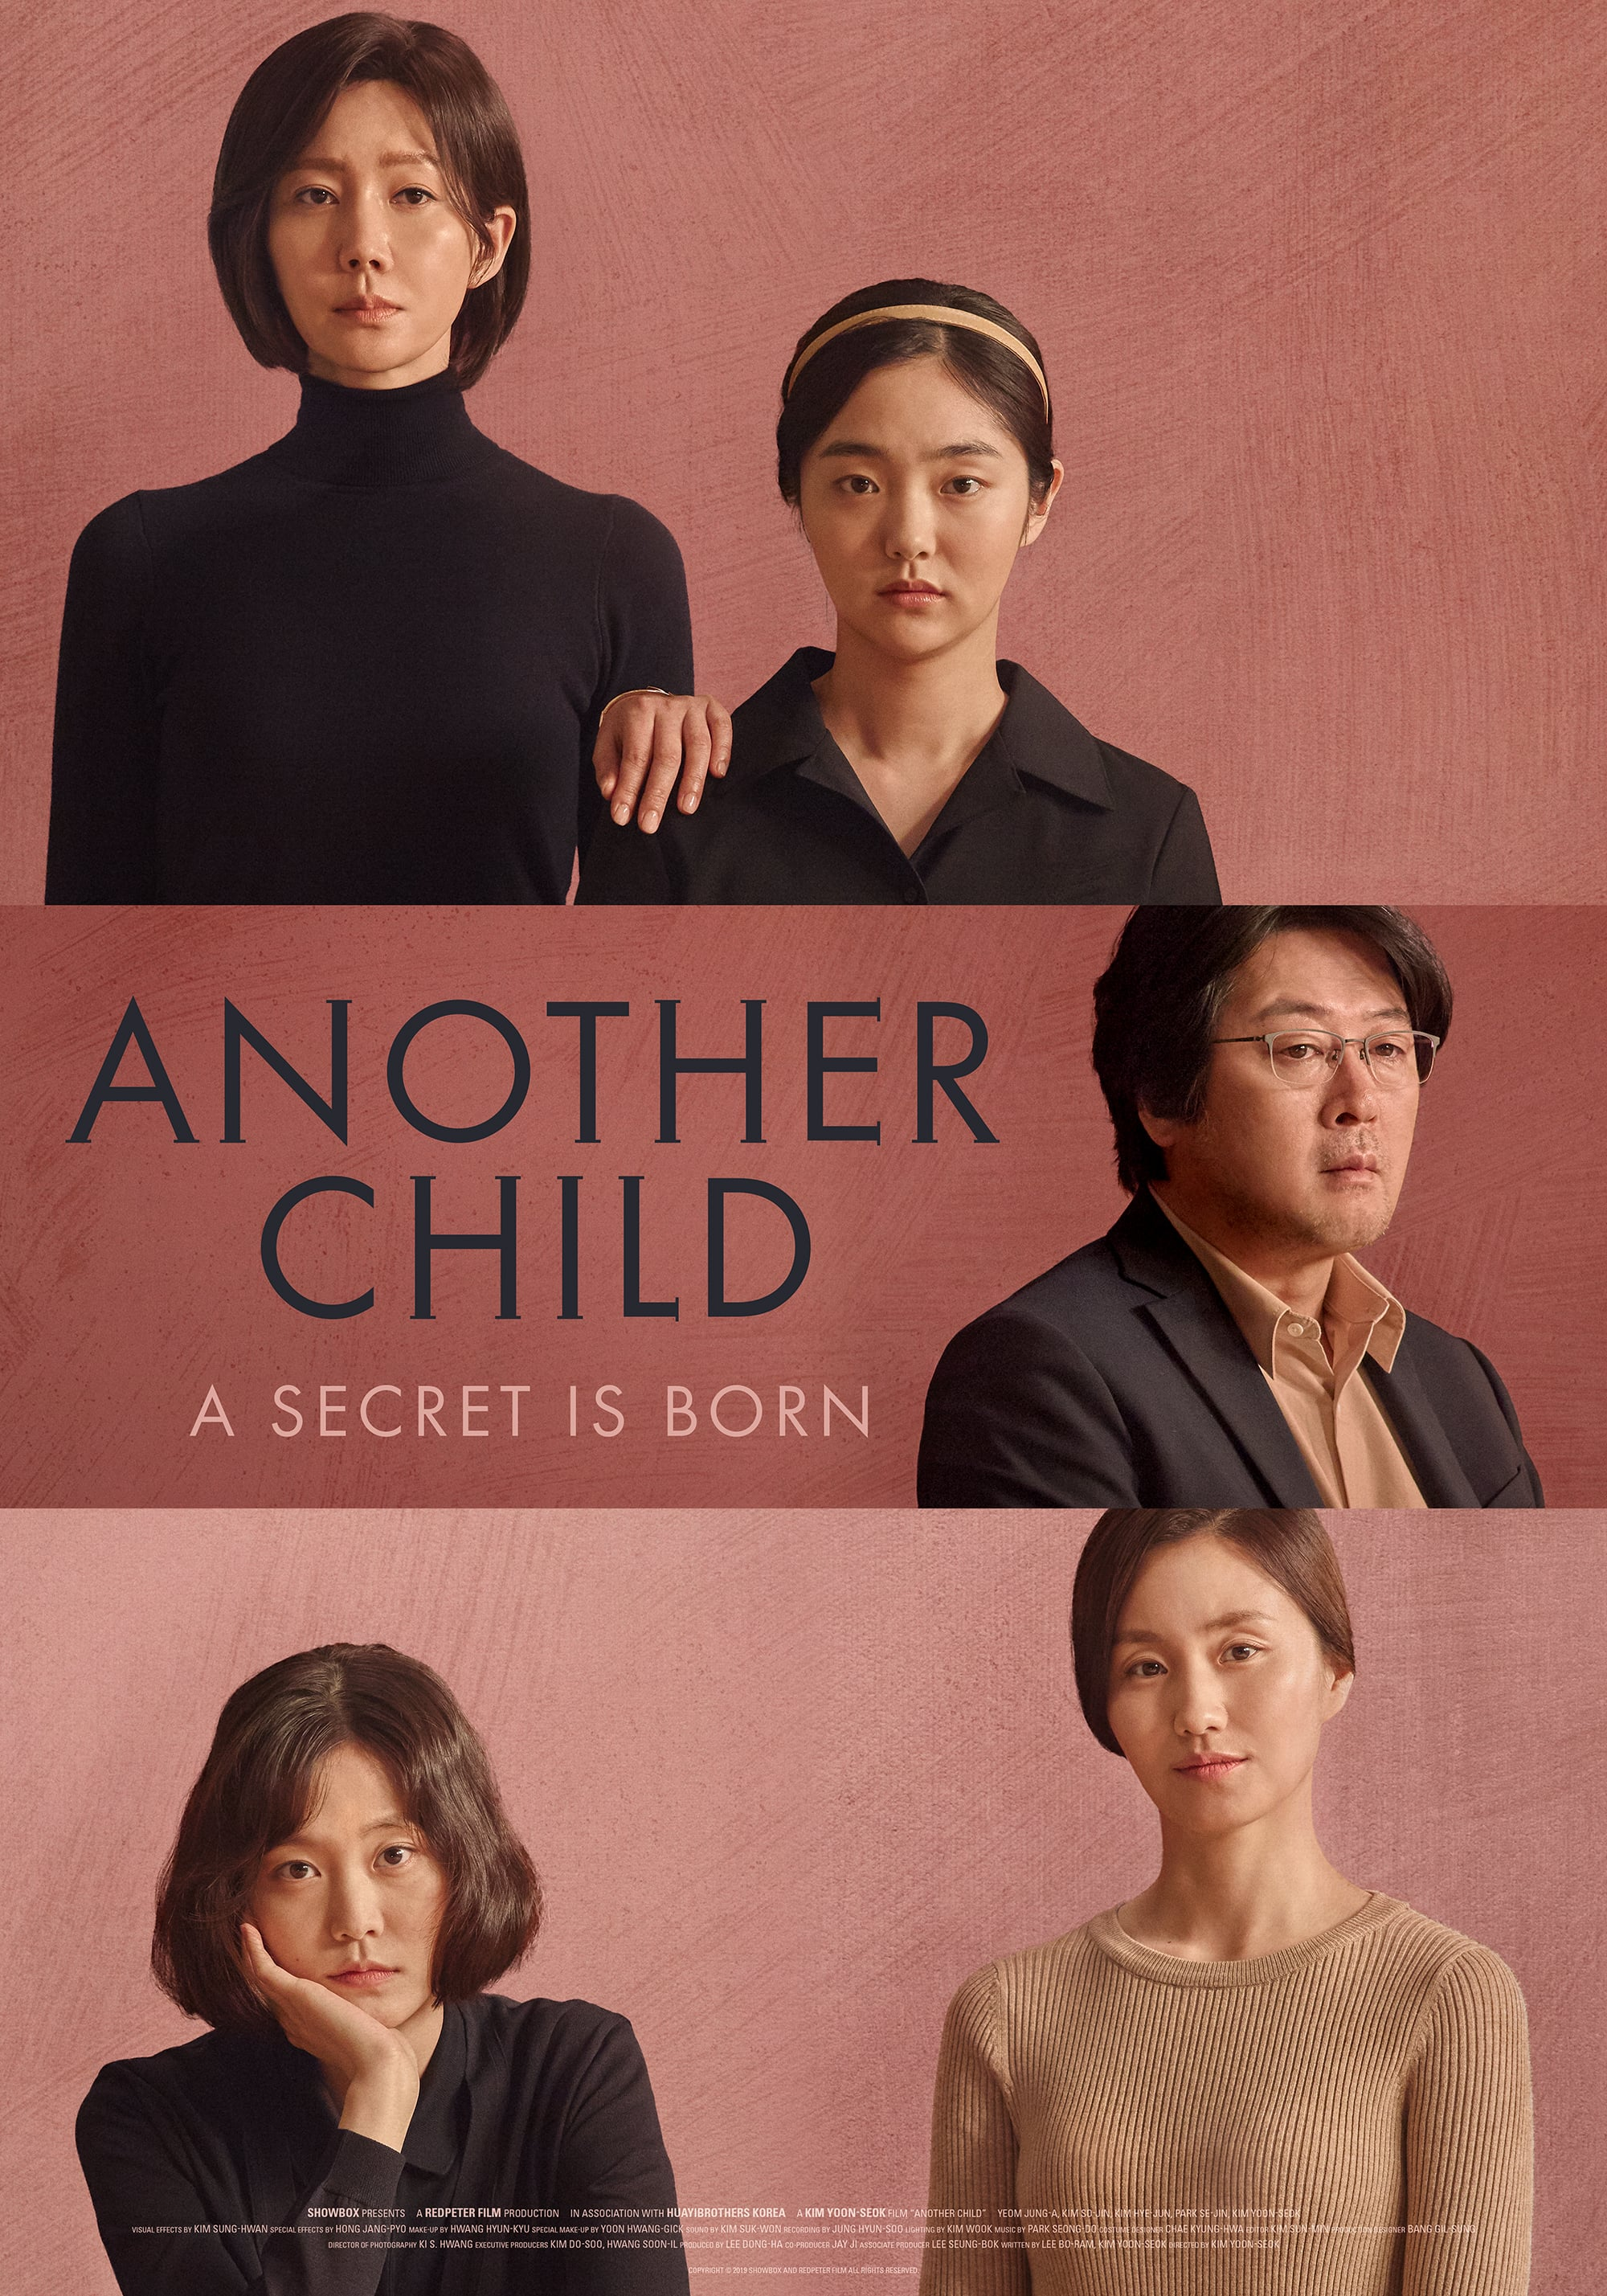 Regarder Another child en streaming gratuit